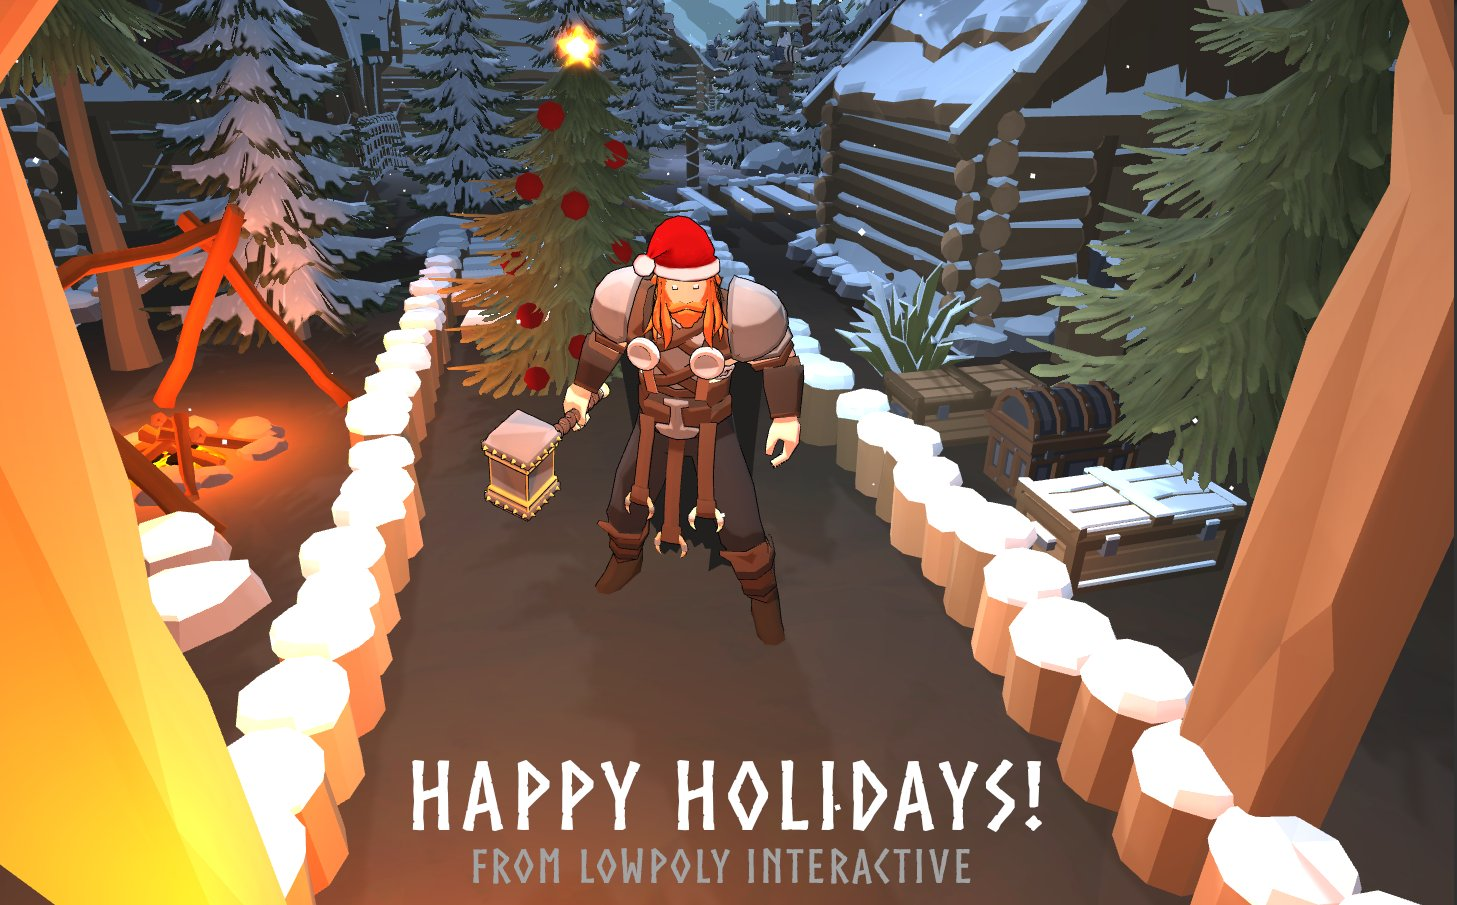 Lowpoly Interactive Happy Holidays Image